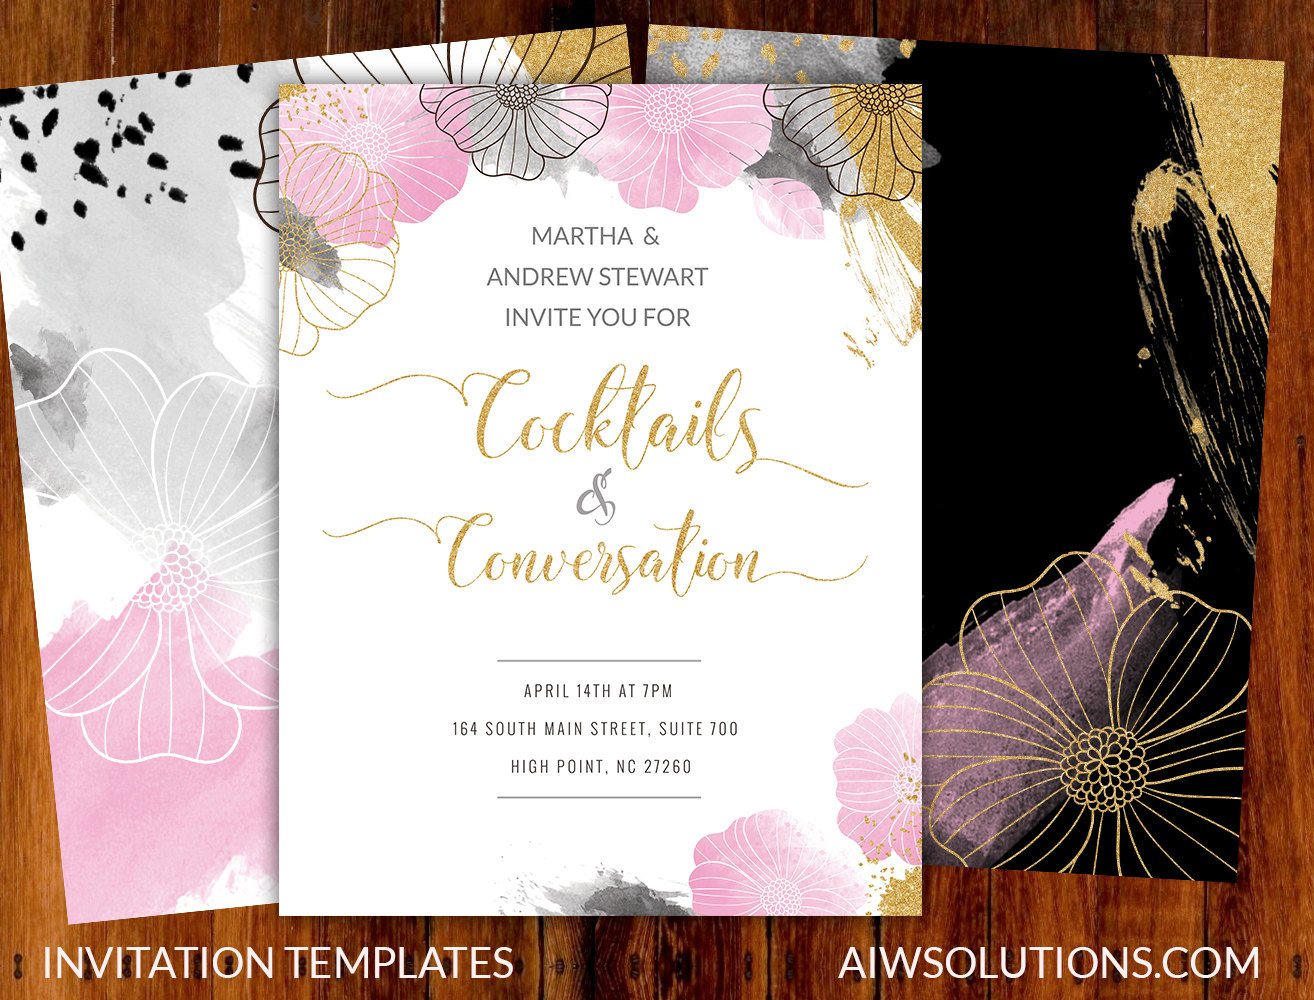 Invitations event templatesave the date template flyer template invitations event templatesave the date template flyer templatepostcard save the date postcardinvitations celebrity event card stopboris Images